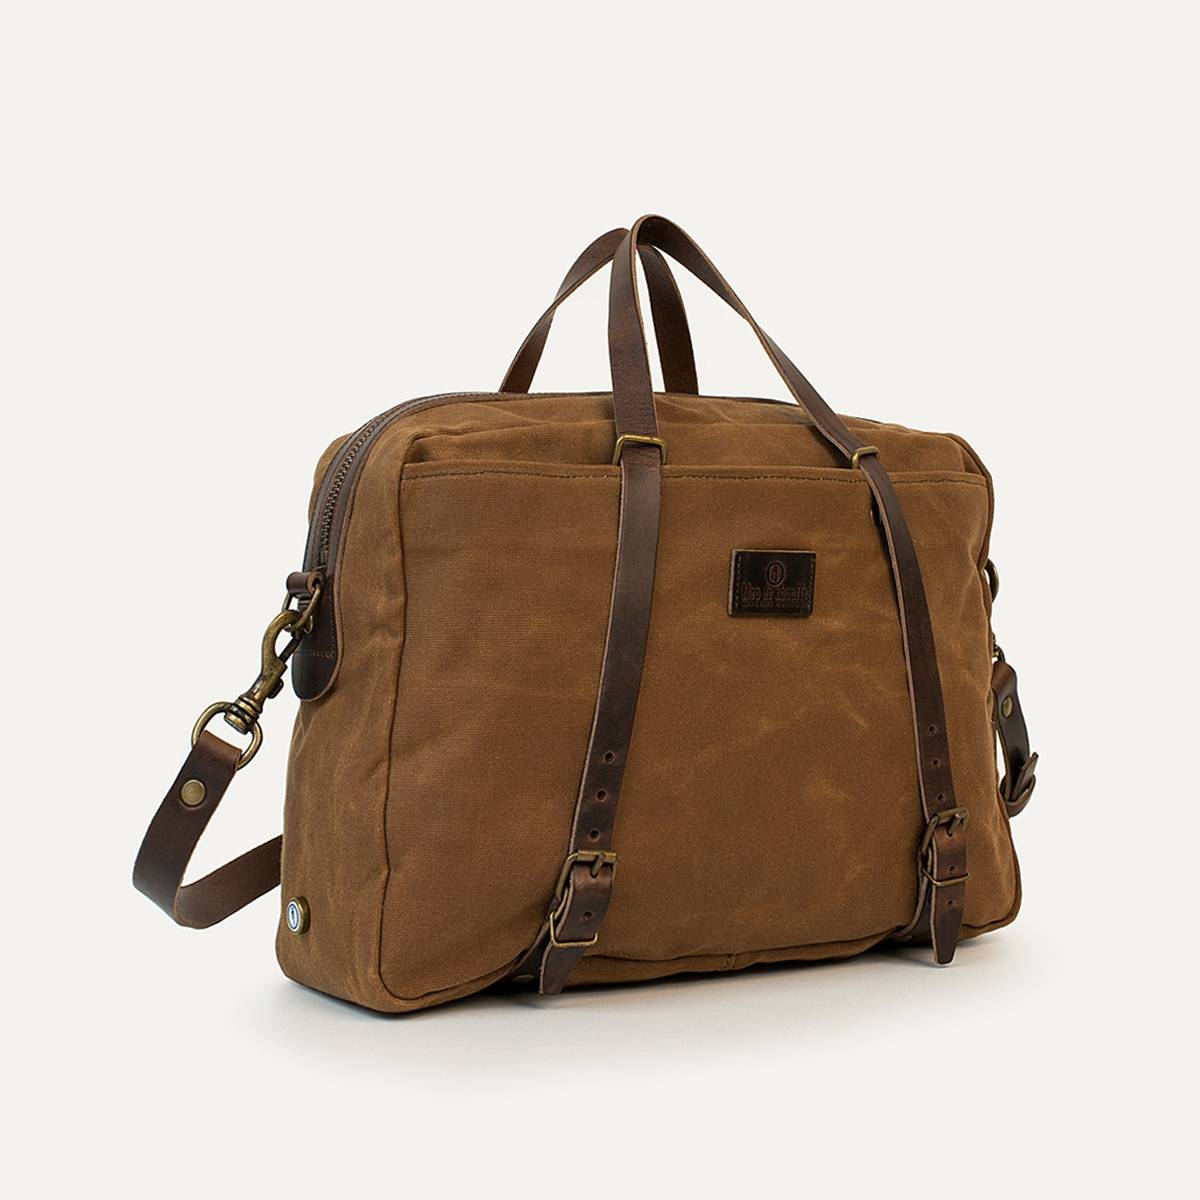 Business bag Report WAXY - Camel (image n°1)